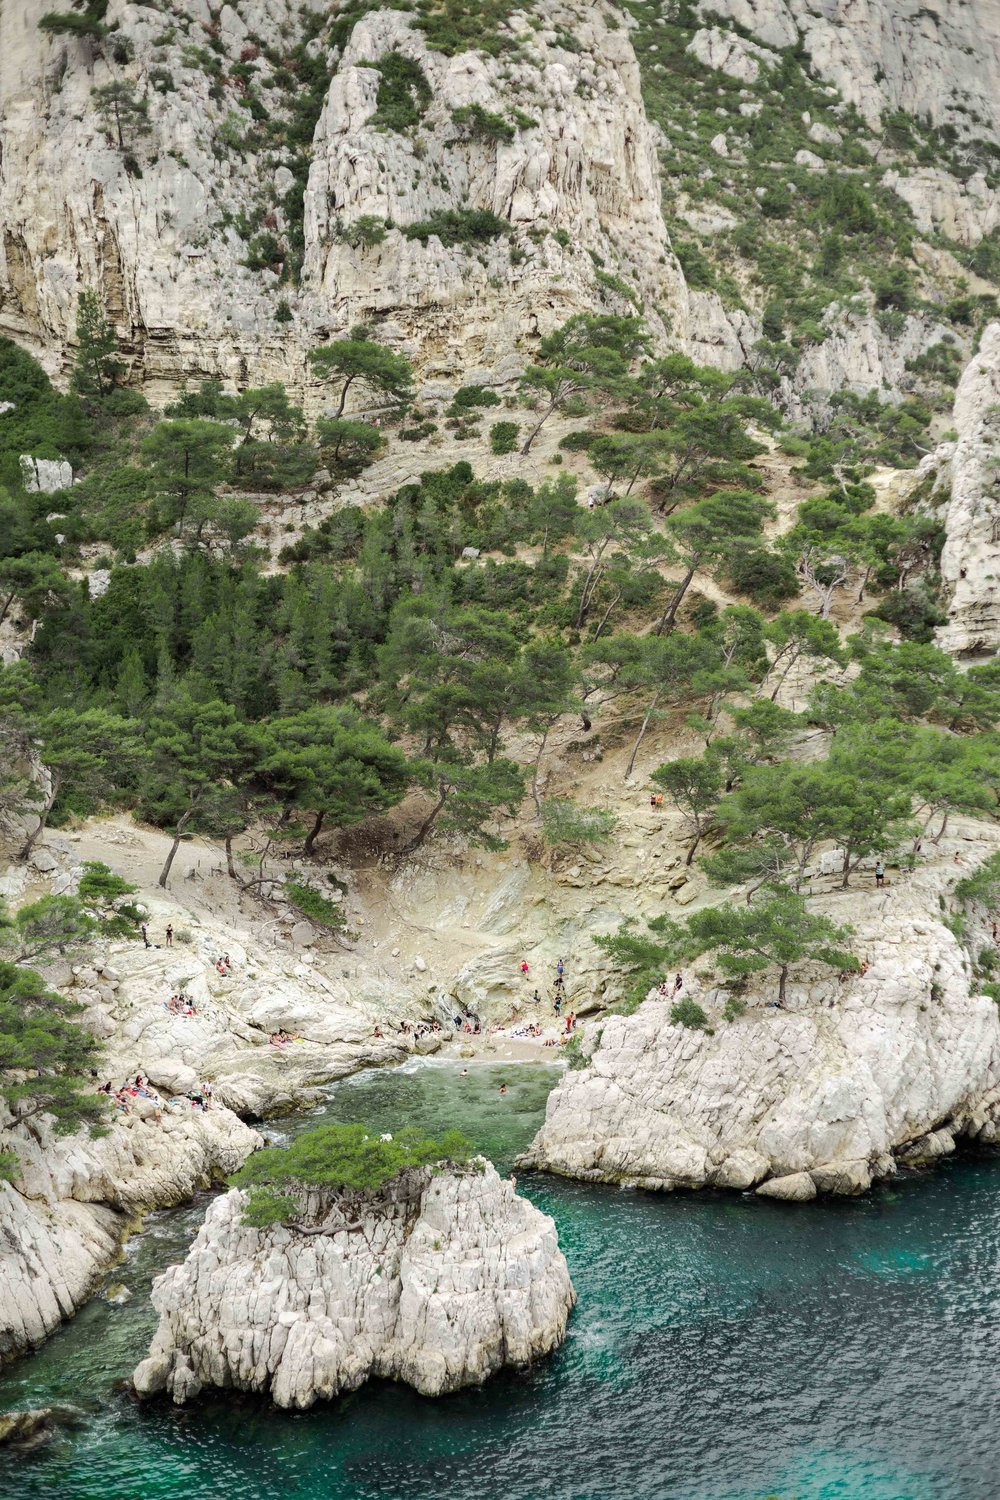 Parc national des Calanques - 01